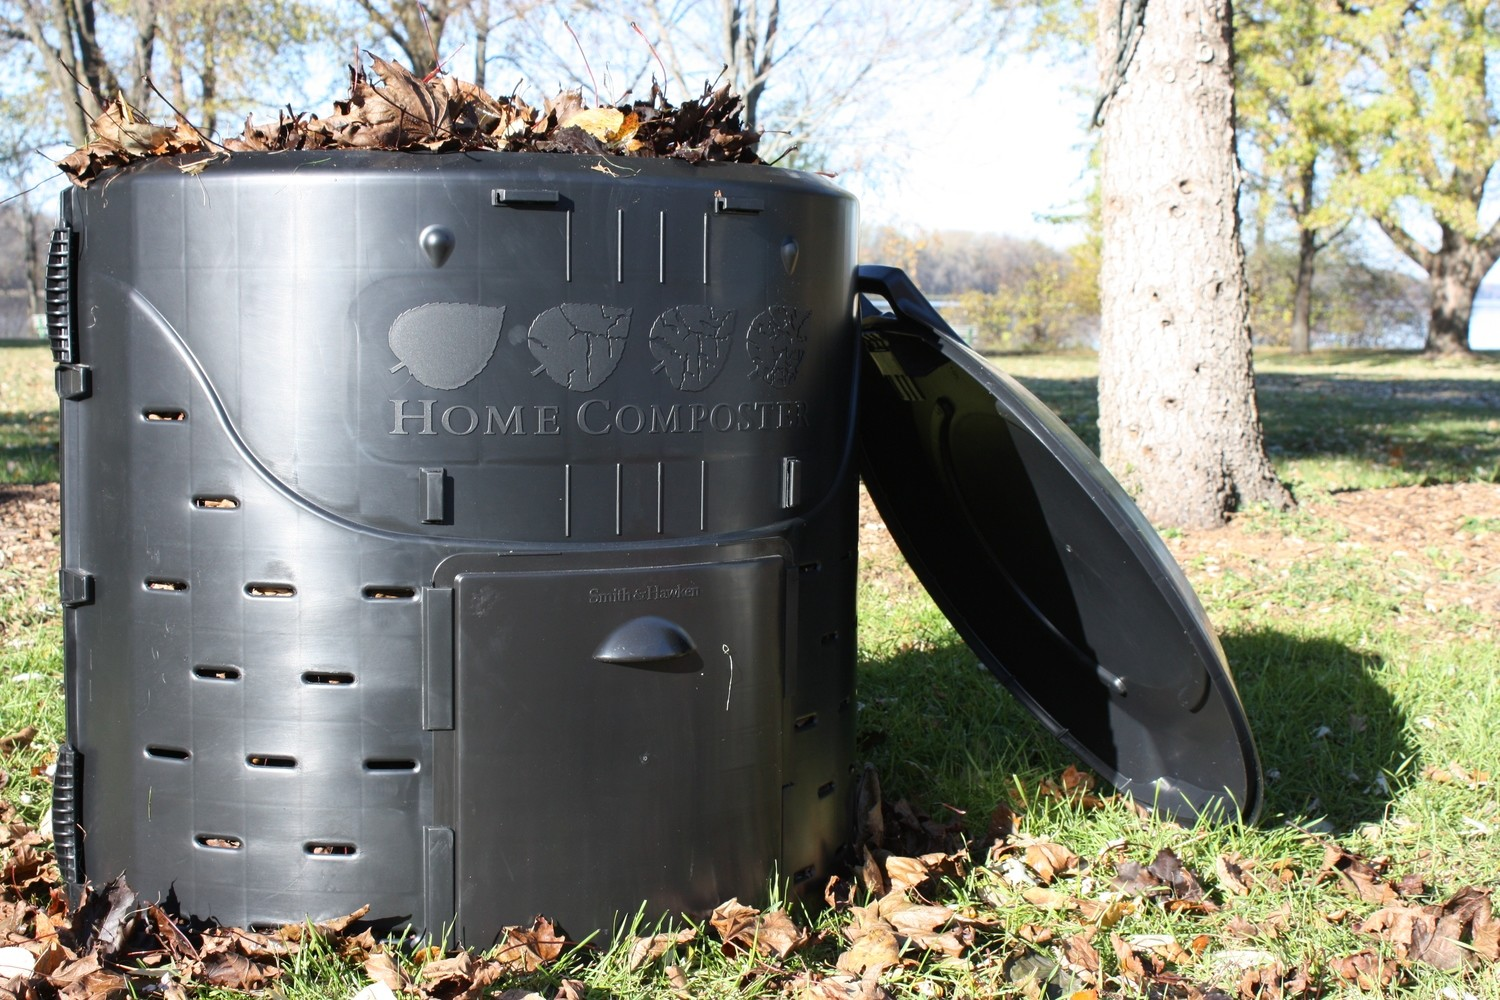 Chisago County Home Composter